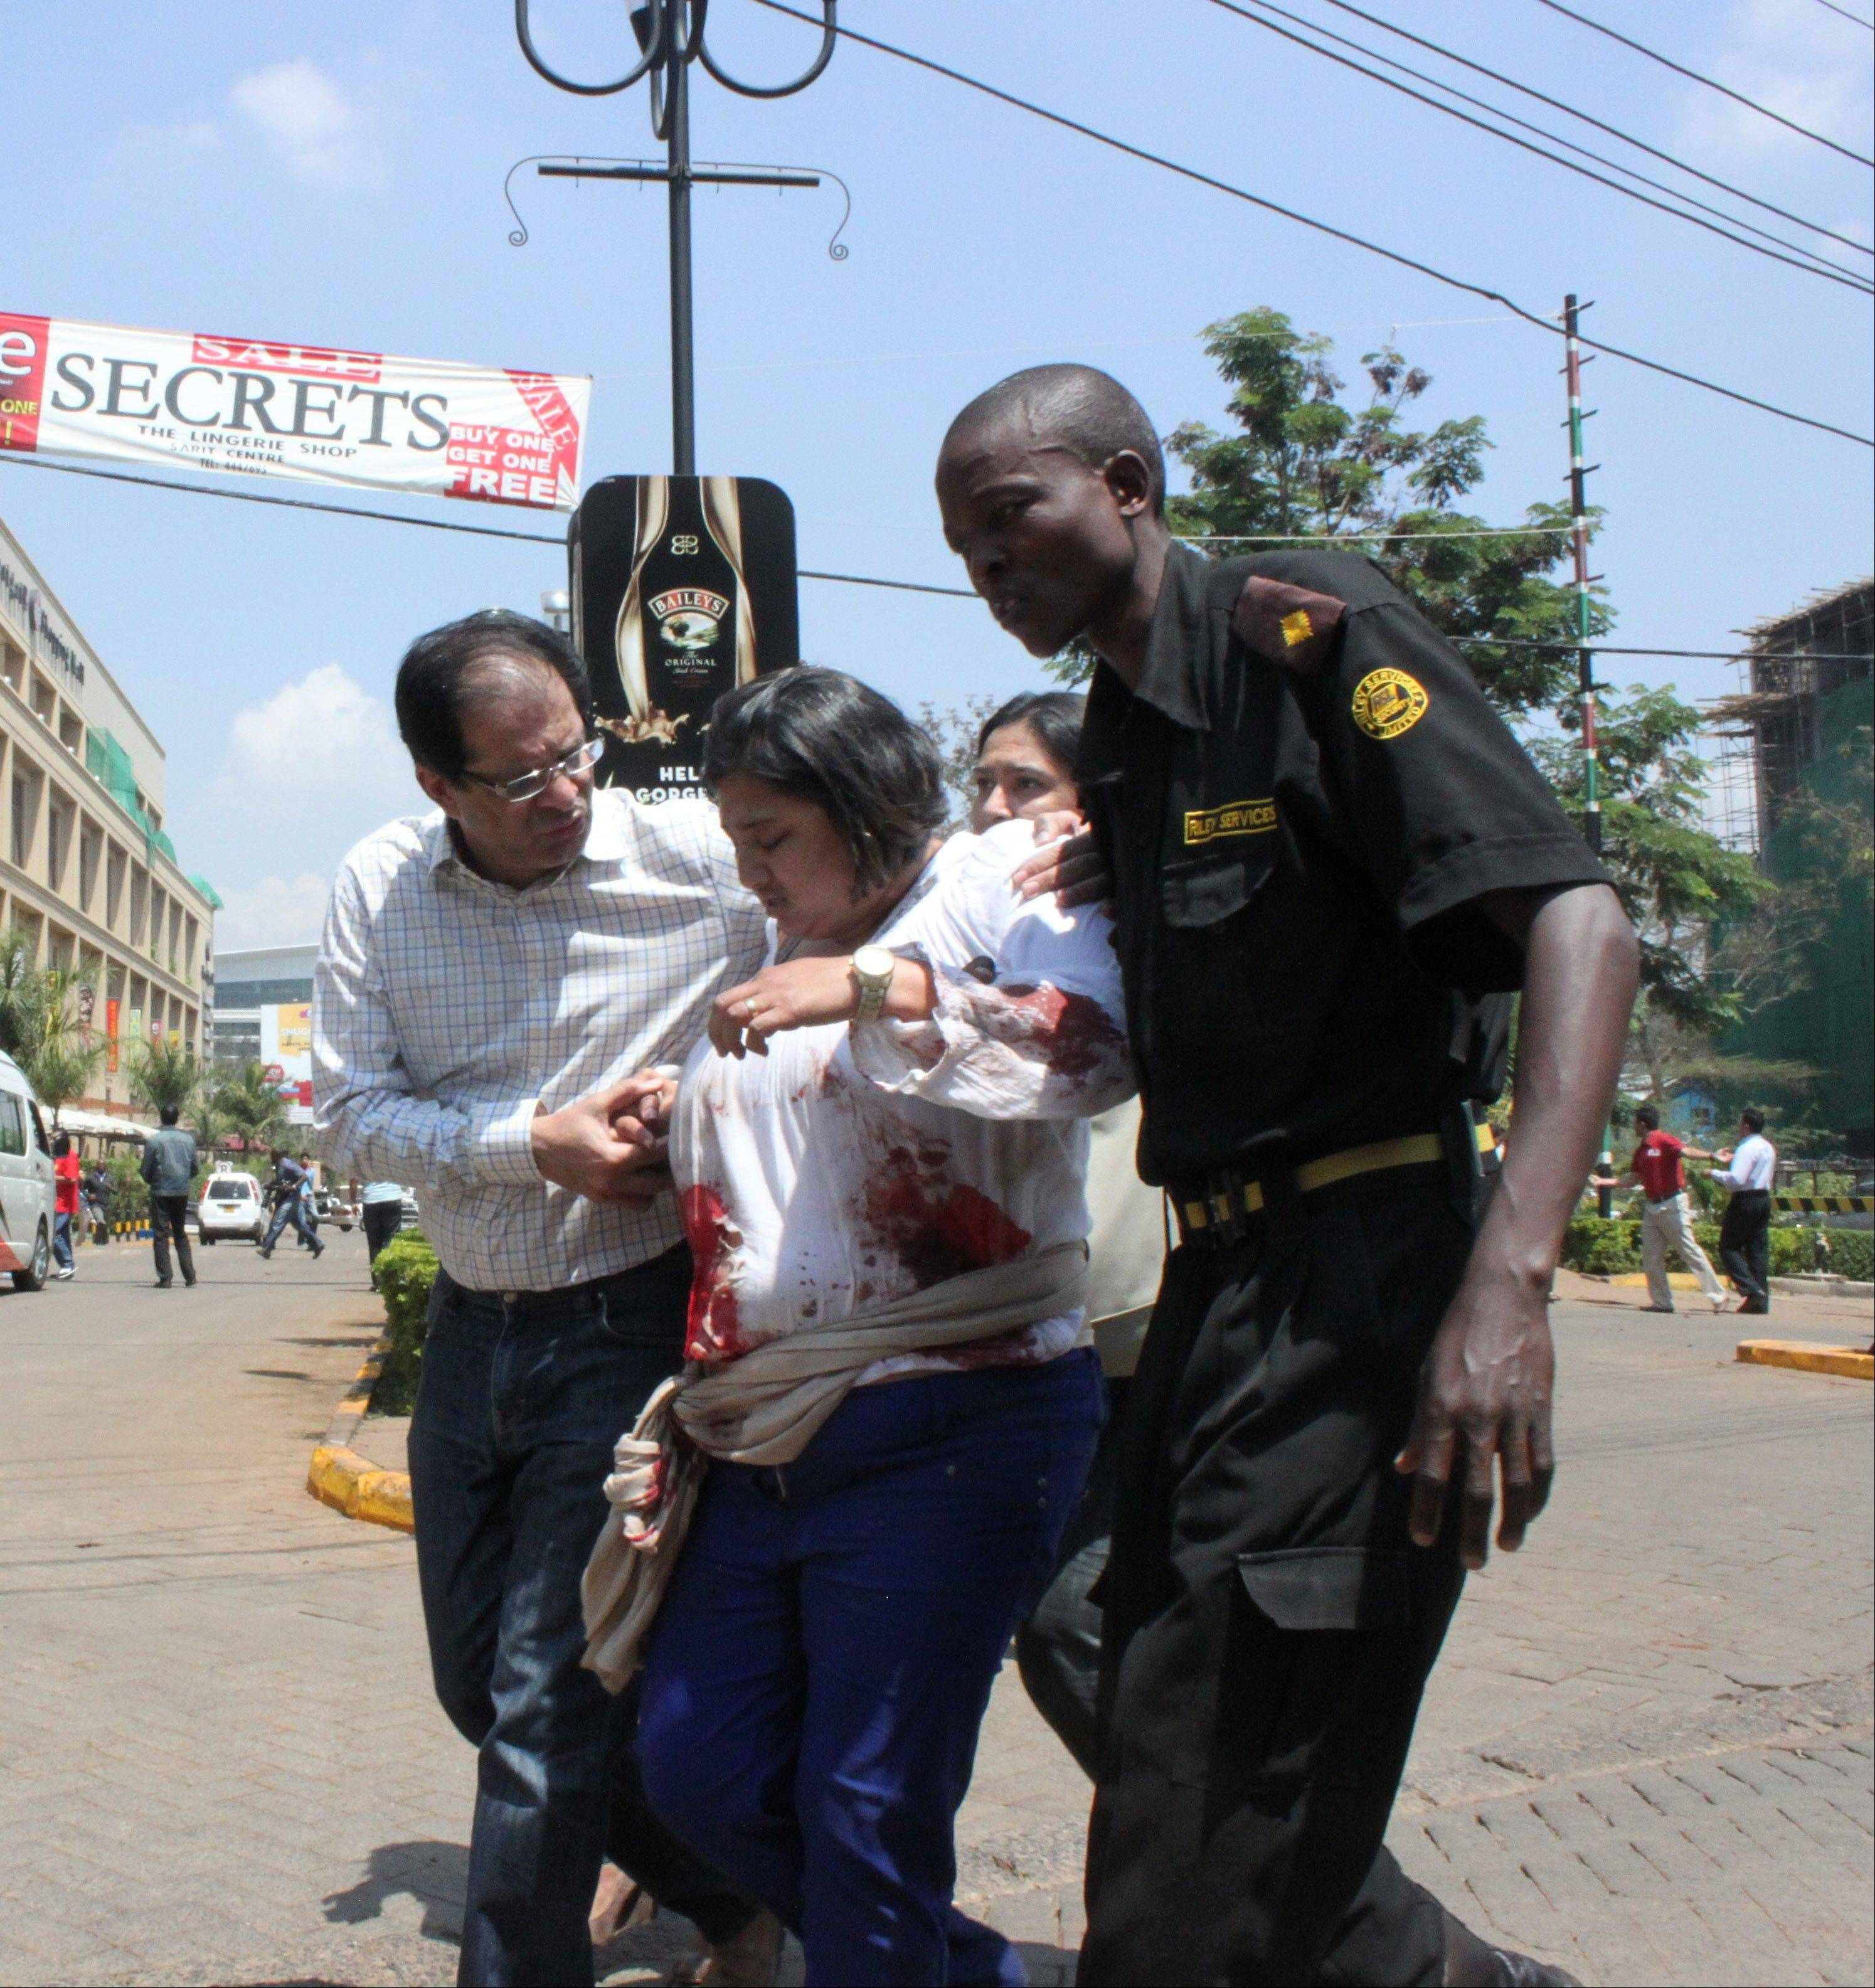 A security officer helps a wounded woman outside the Westgate Mall in Nairobi, Kenya on Saturday, Sept. 21, after gunmen threw grenades and opened fire during an attack that left multiple dead bodies and dozens wounded. A witness to the attacks on the upscale shopping mall says that gunmen told Muslims to stand up and leave and that non-Muslims would be targeted.